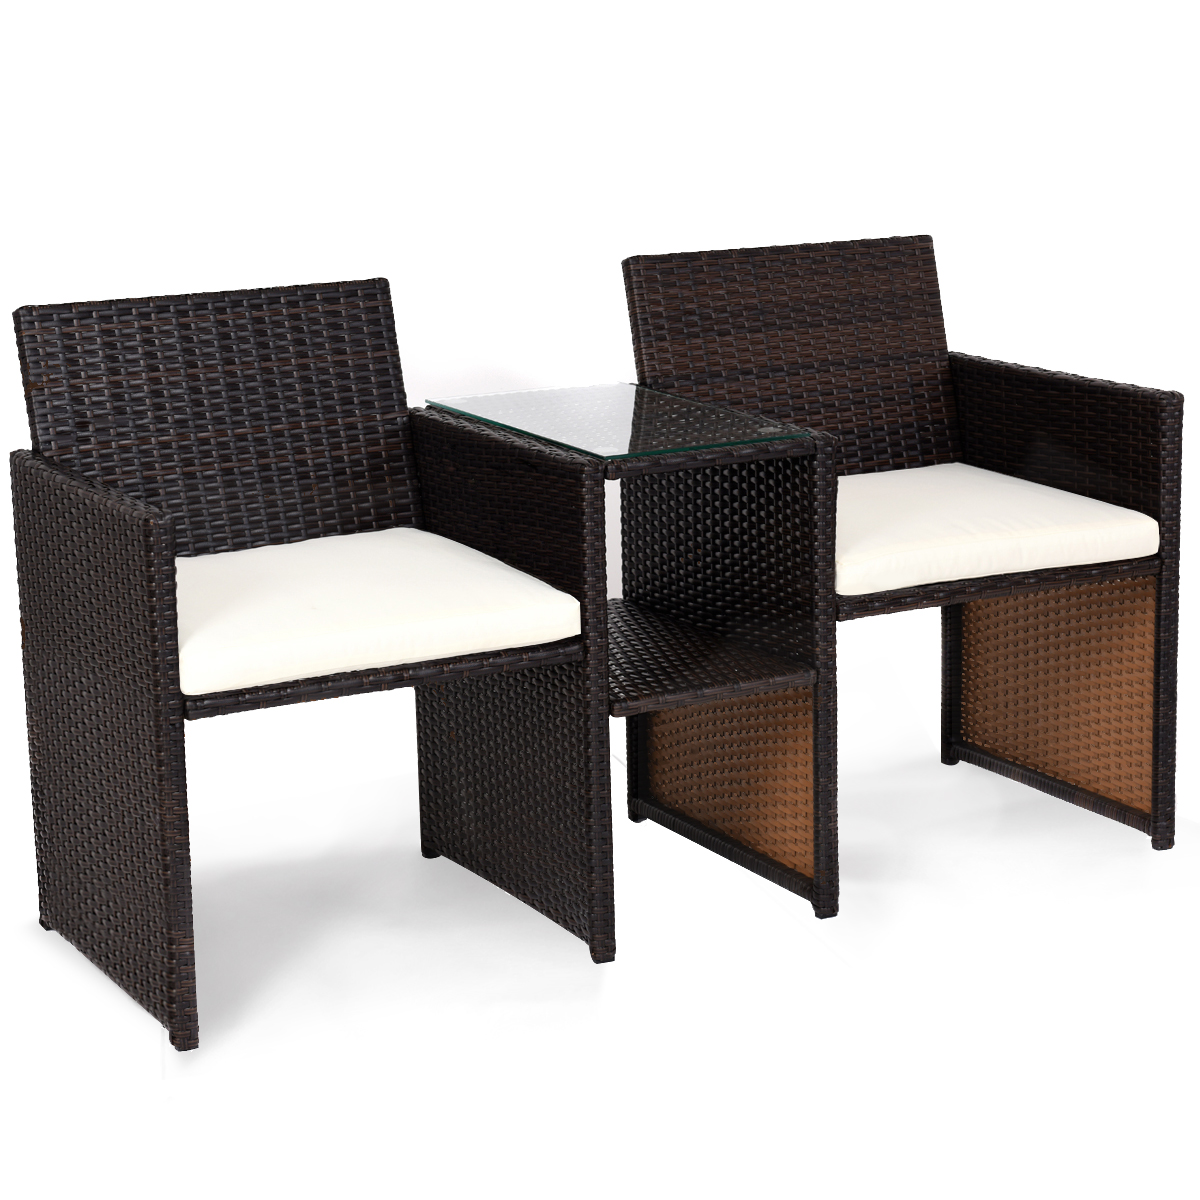 two seat lawn chairs barber chair restoration gymax cushioned patio rattan loveseat sofa table walmart com